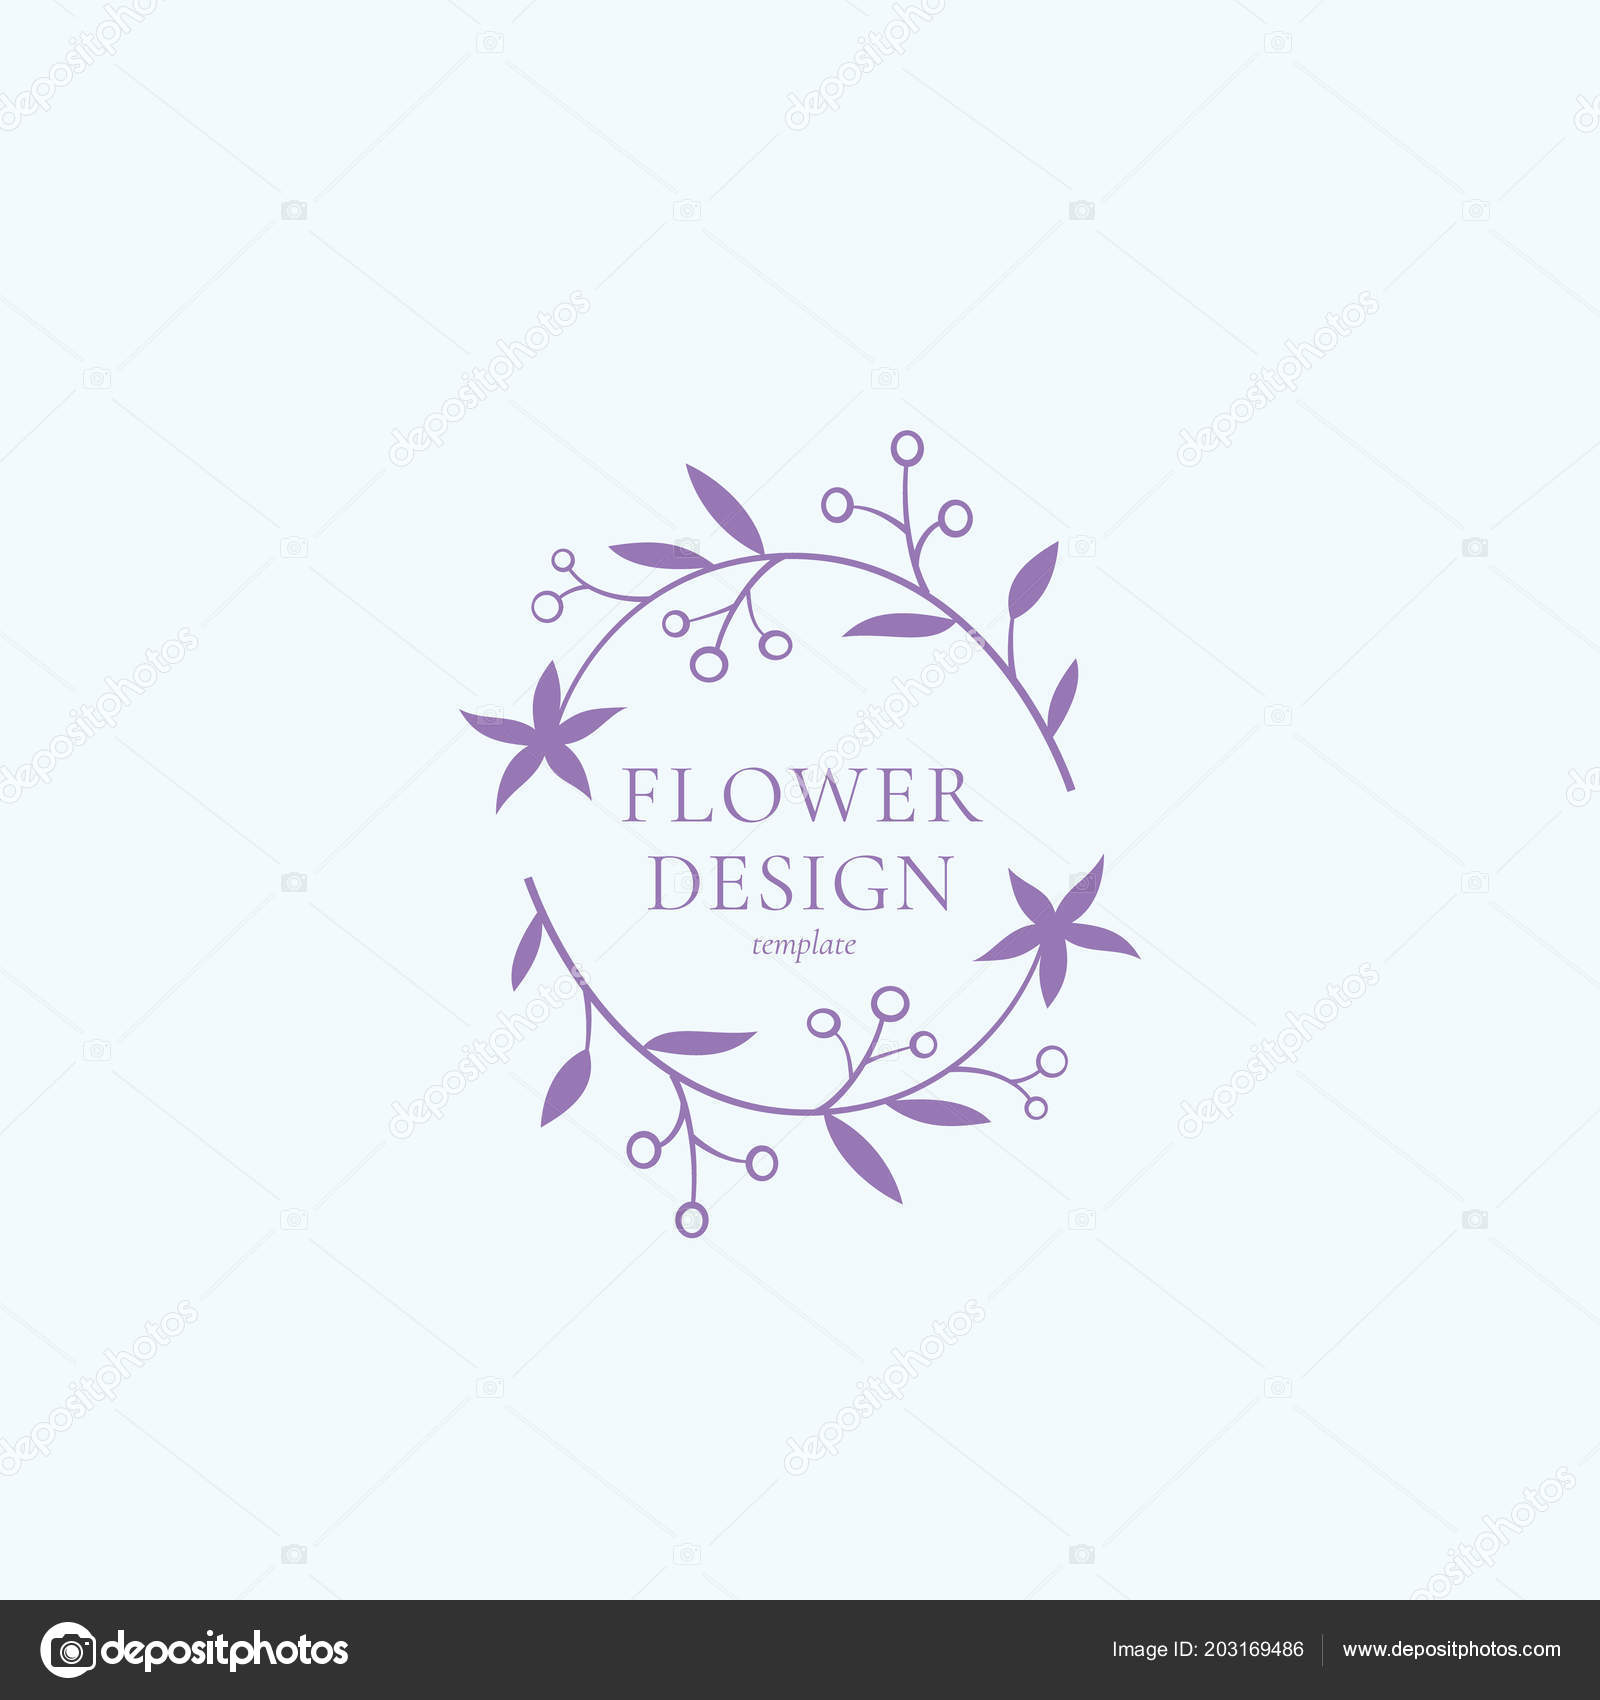 Flower design vector sign symbol or logo template abstract retro flower design vector sign symbol or logo template abstract retro floral illustration with classy typography cute premium quality emblem for beauty salon izmirmasajfo